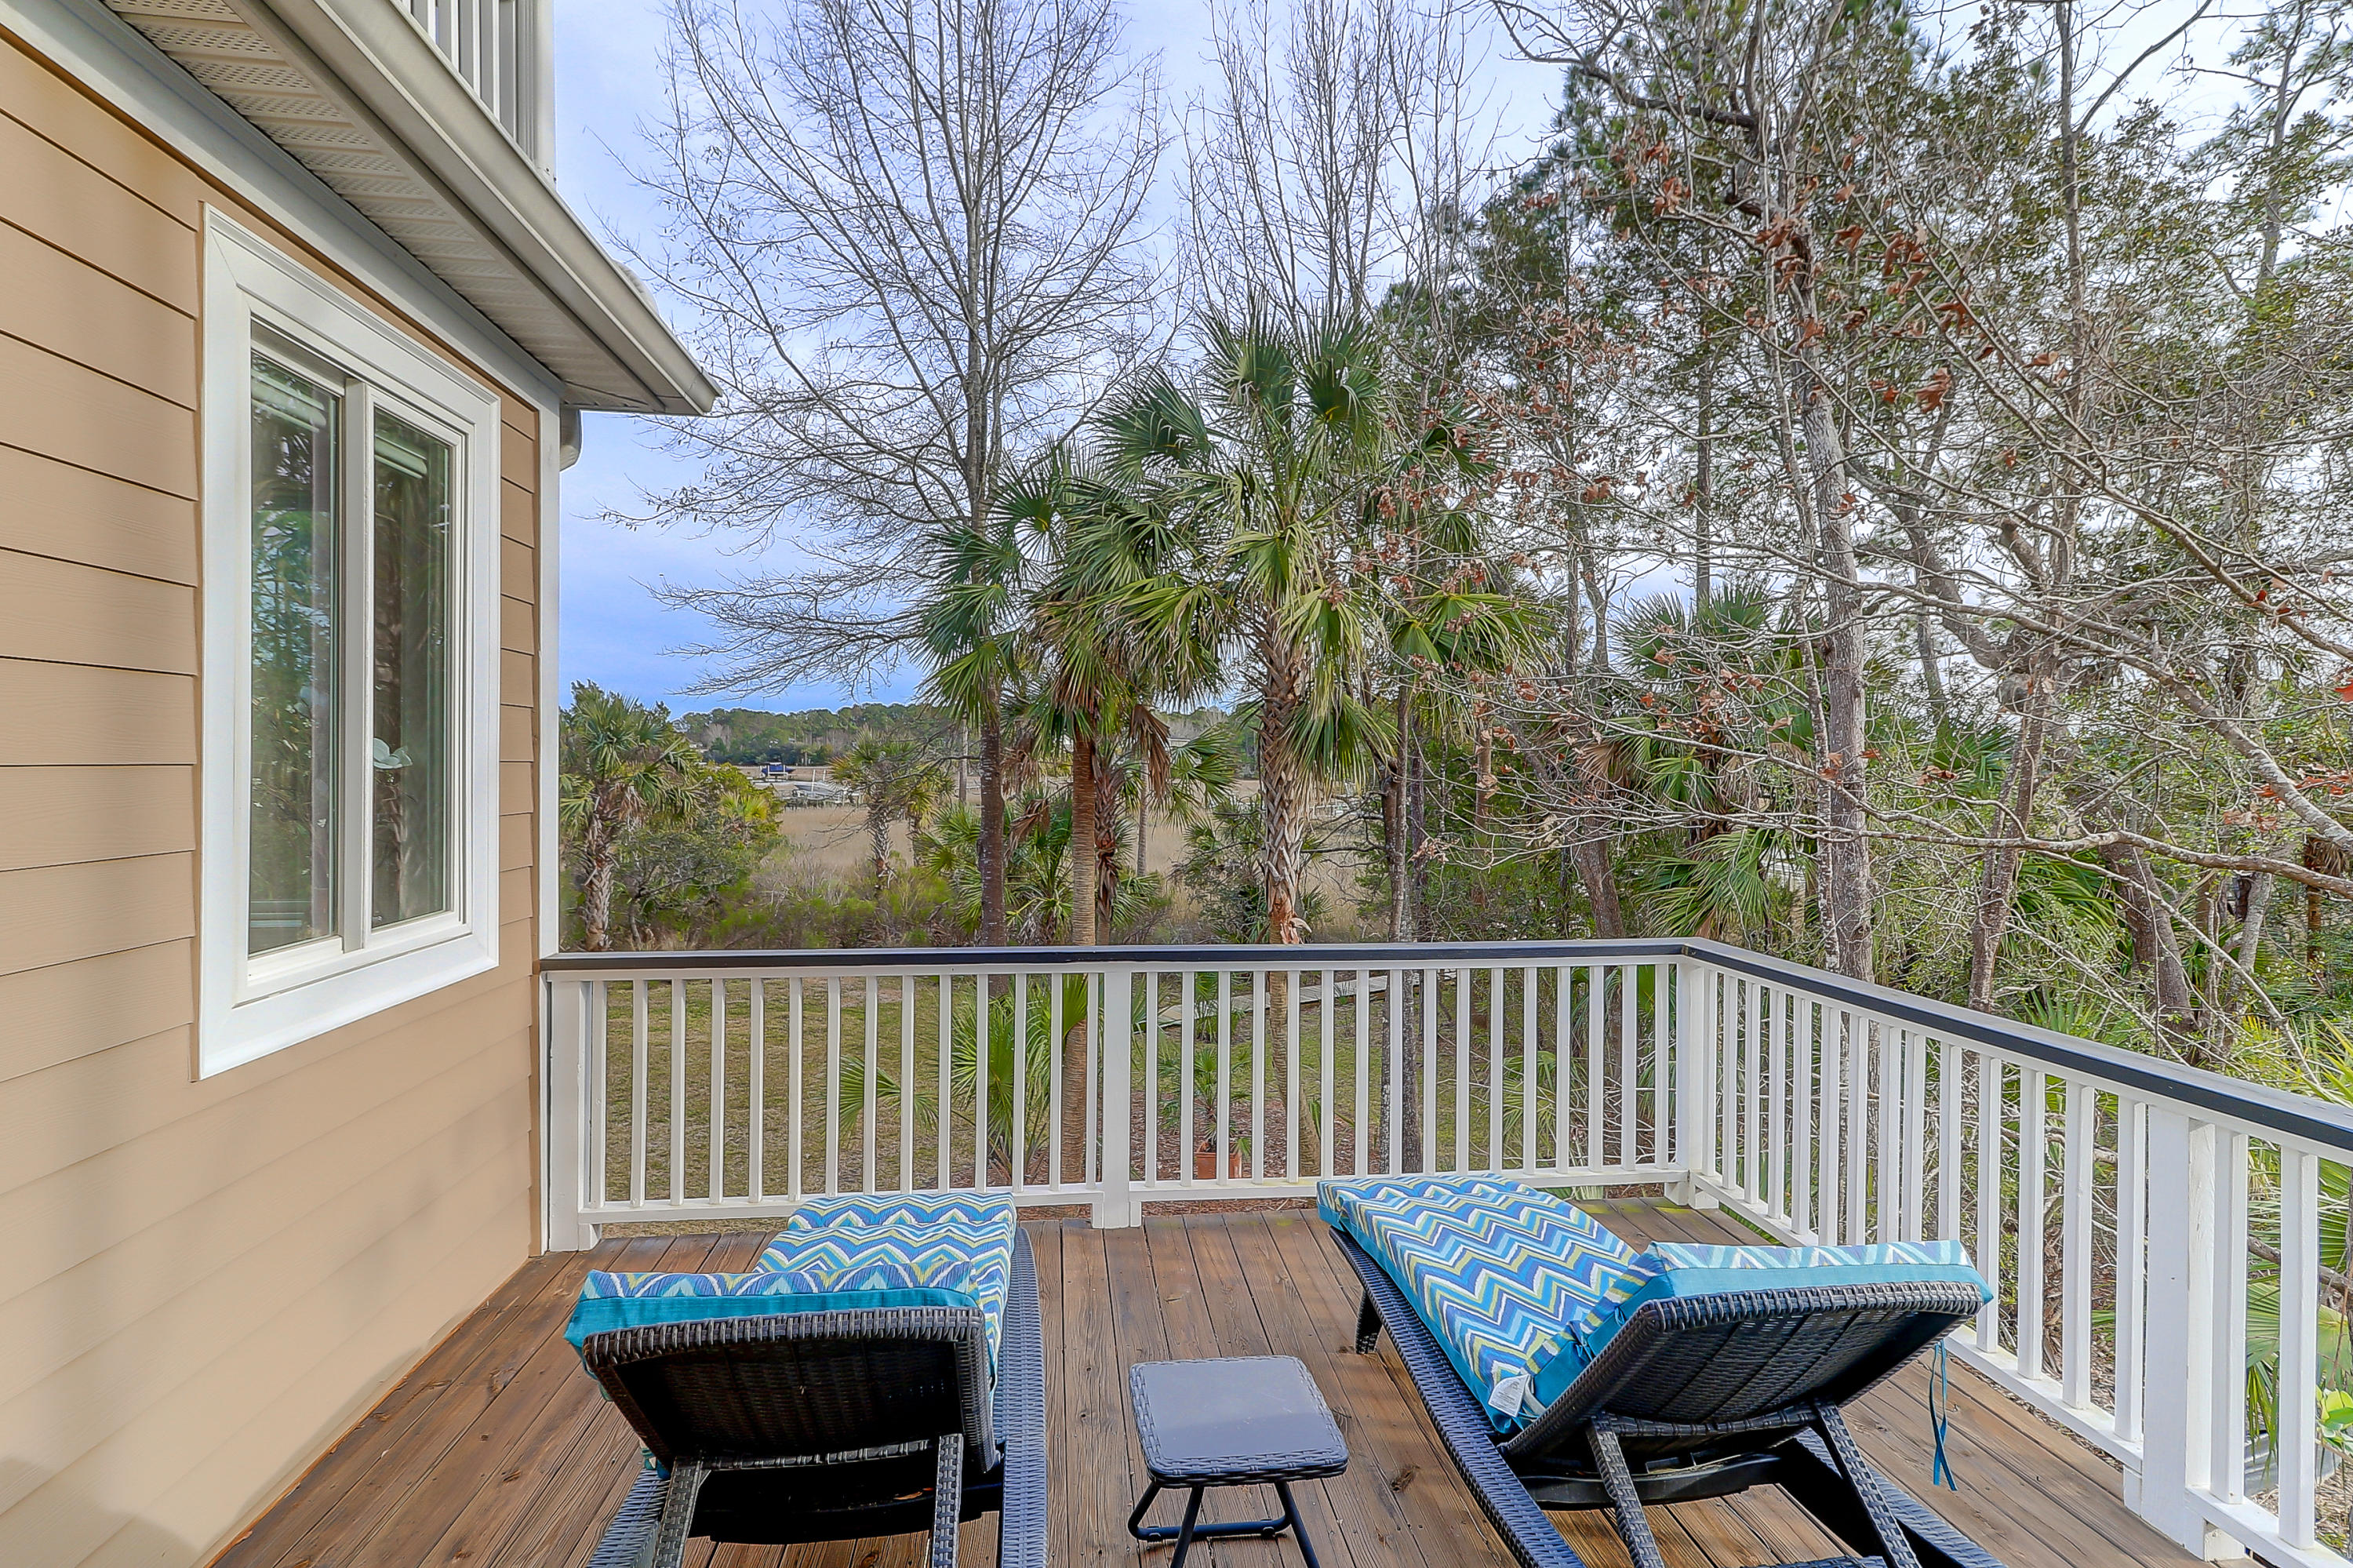 Dunes West Homes For Sale - 1764 Greenspoint, Mount Pleasant, SC - 19